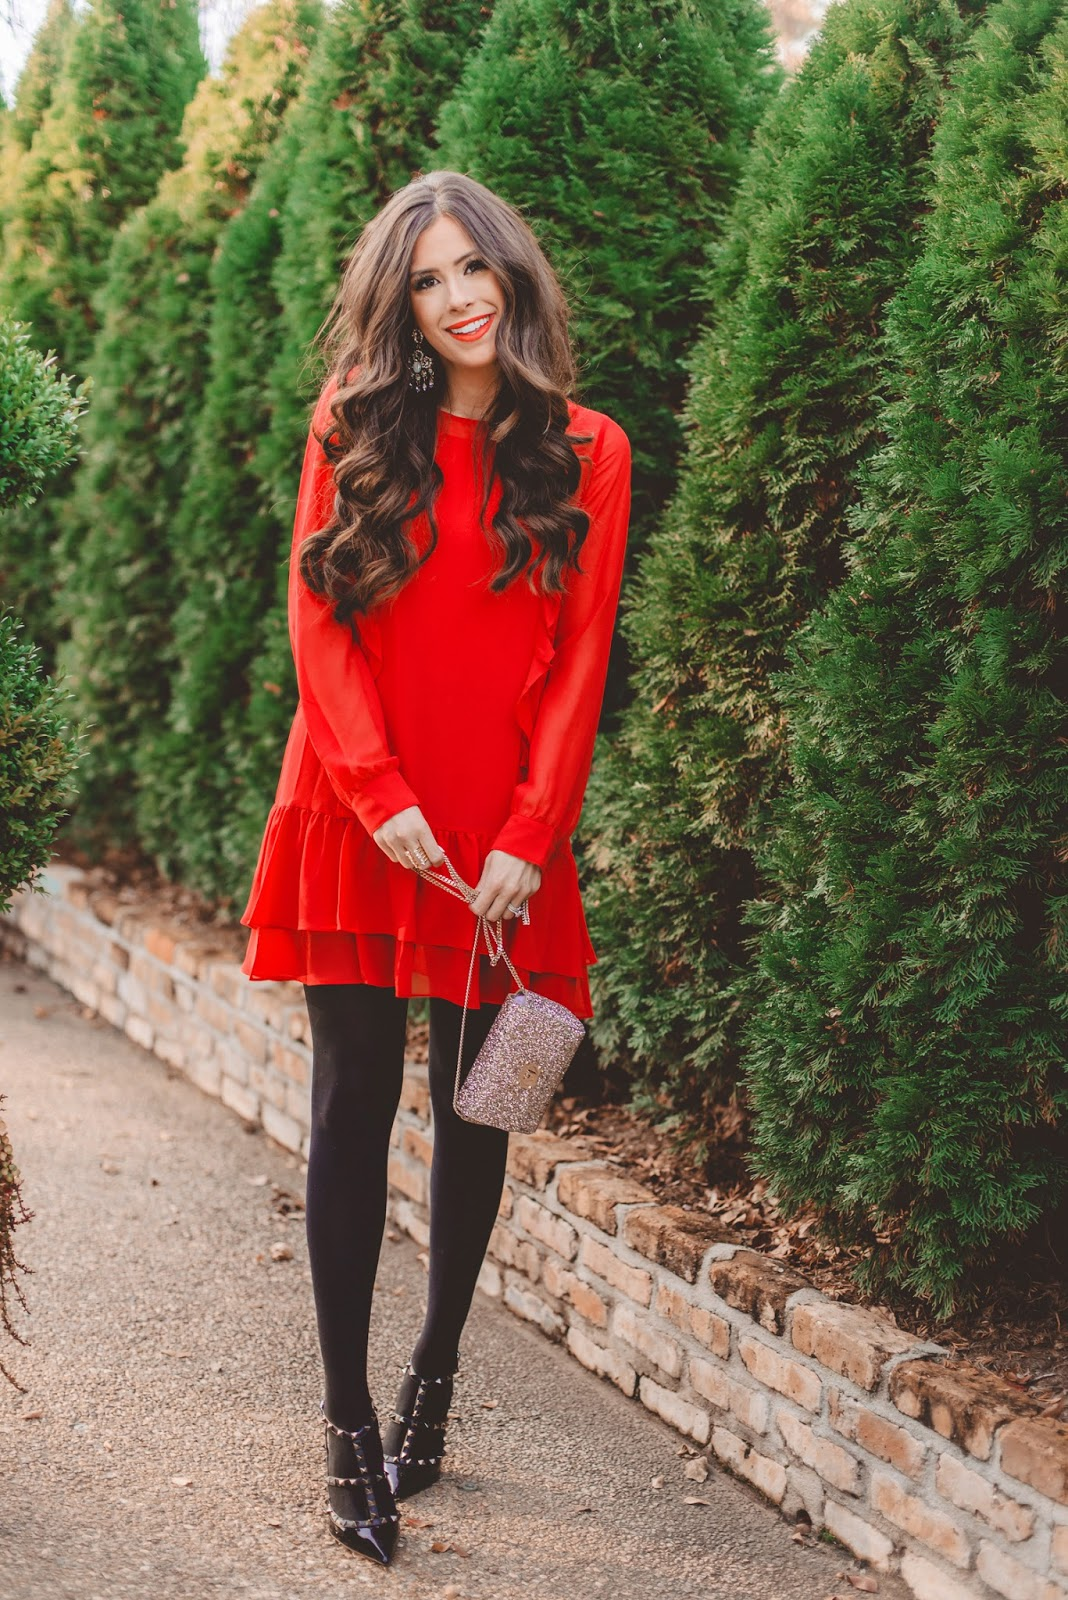 Christmas outfits ideas pinterest , Christmas Cheer